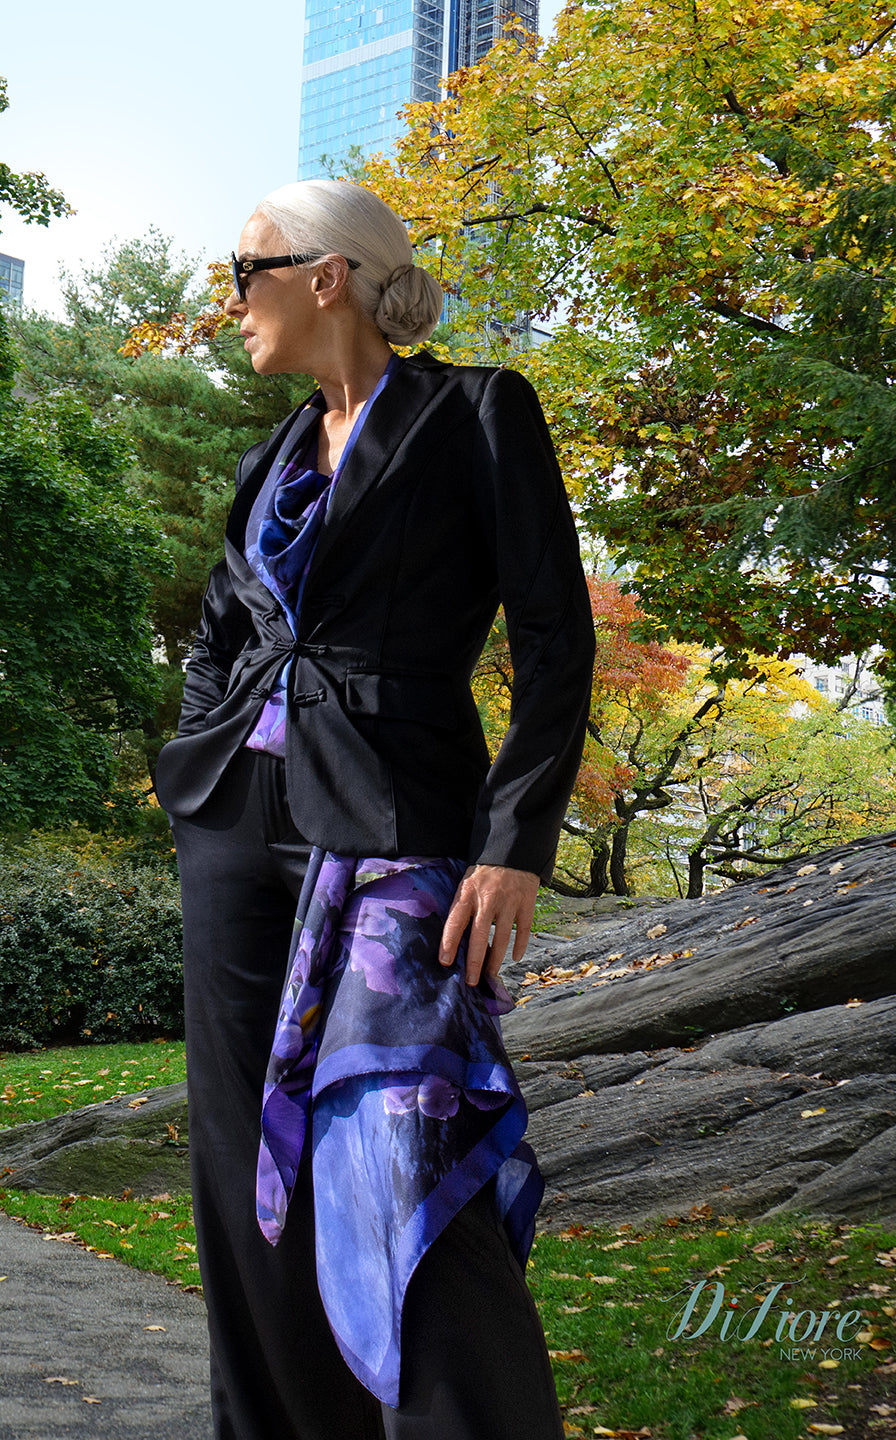 silver hair model, central park, luxury gifts, italian, european, french, fashion model. Womens tops and silk tops, blouses